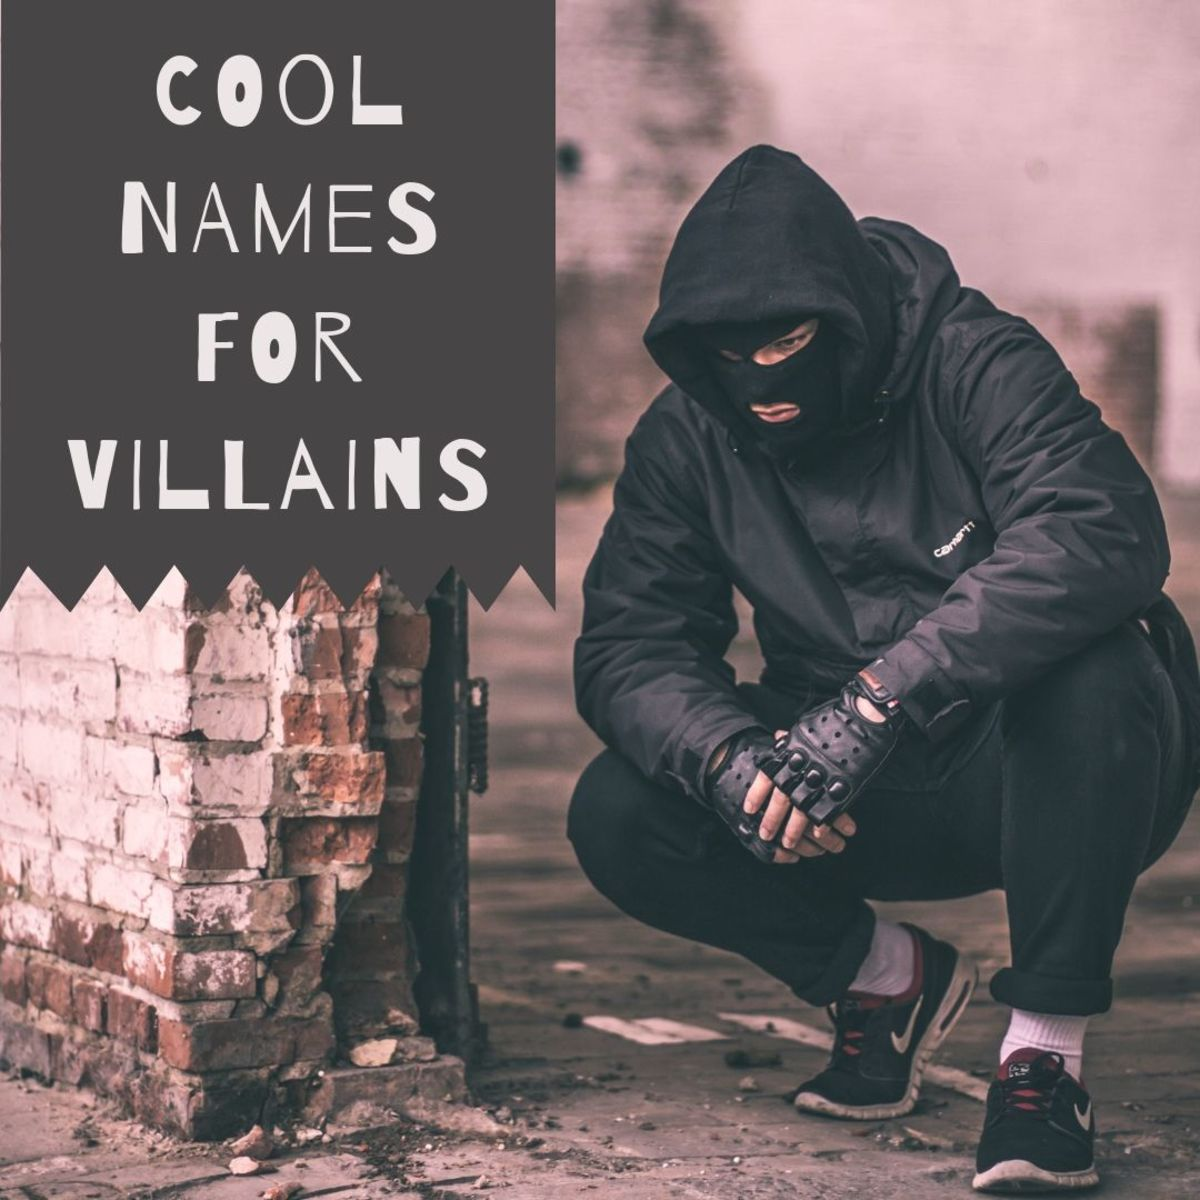 Here you'll find inspiration for your next great villainous character name!